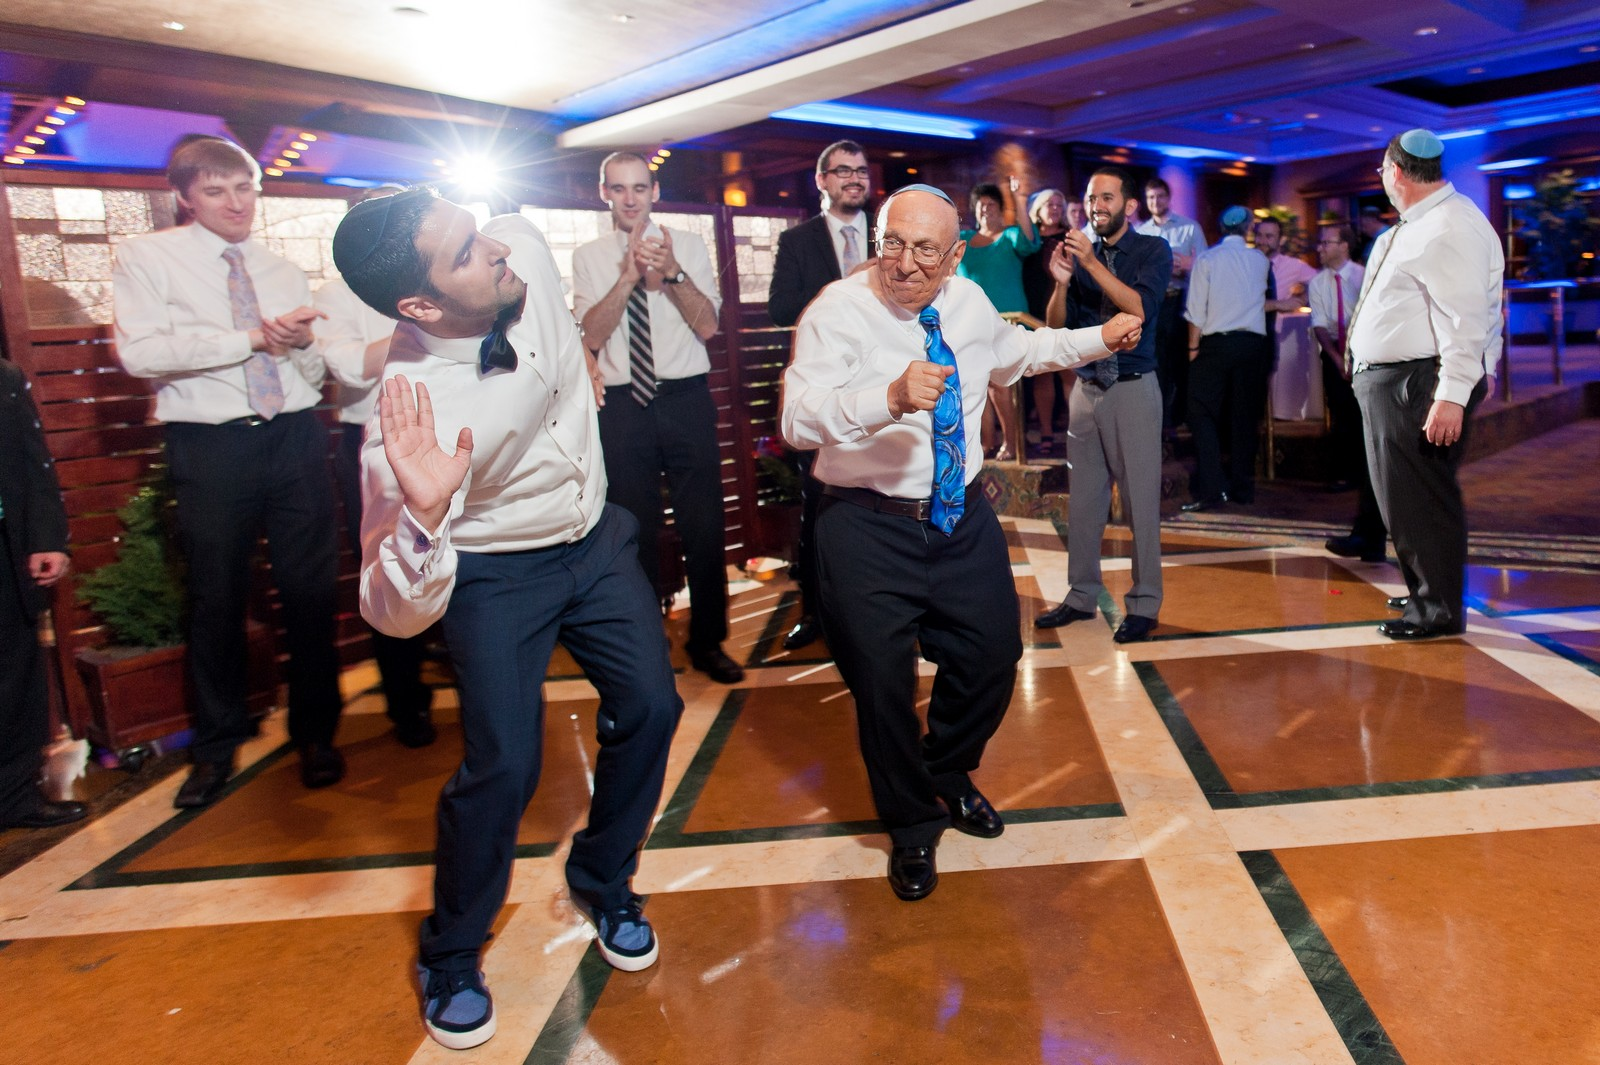 Sam and Yishai's Modern Orthodox Jewish Wedding at Crest Hollow Country Club, Woodbury NY, Photos by Chaim Schvarcz, Groom Dancing